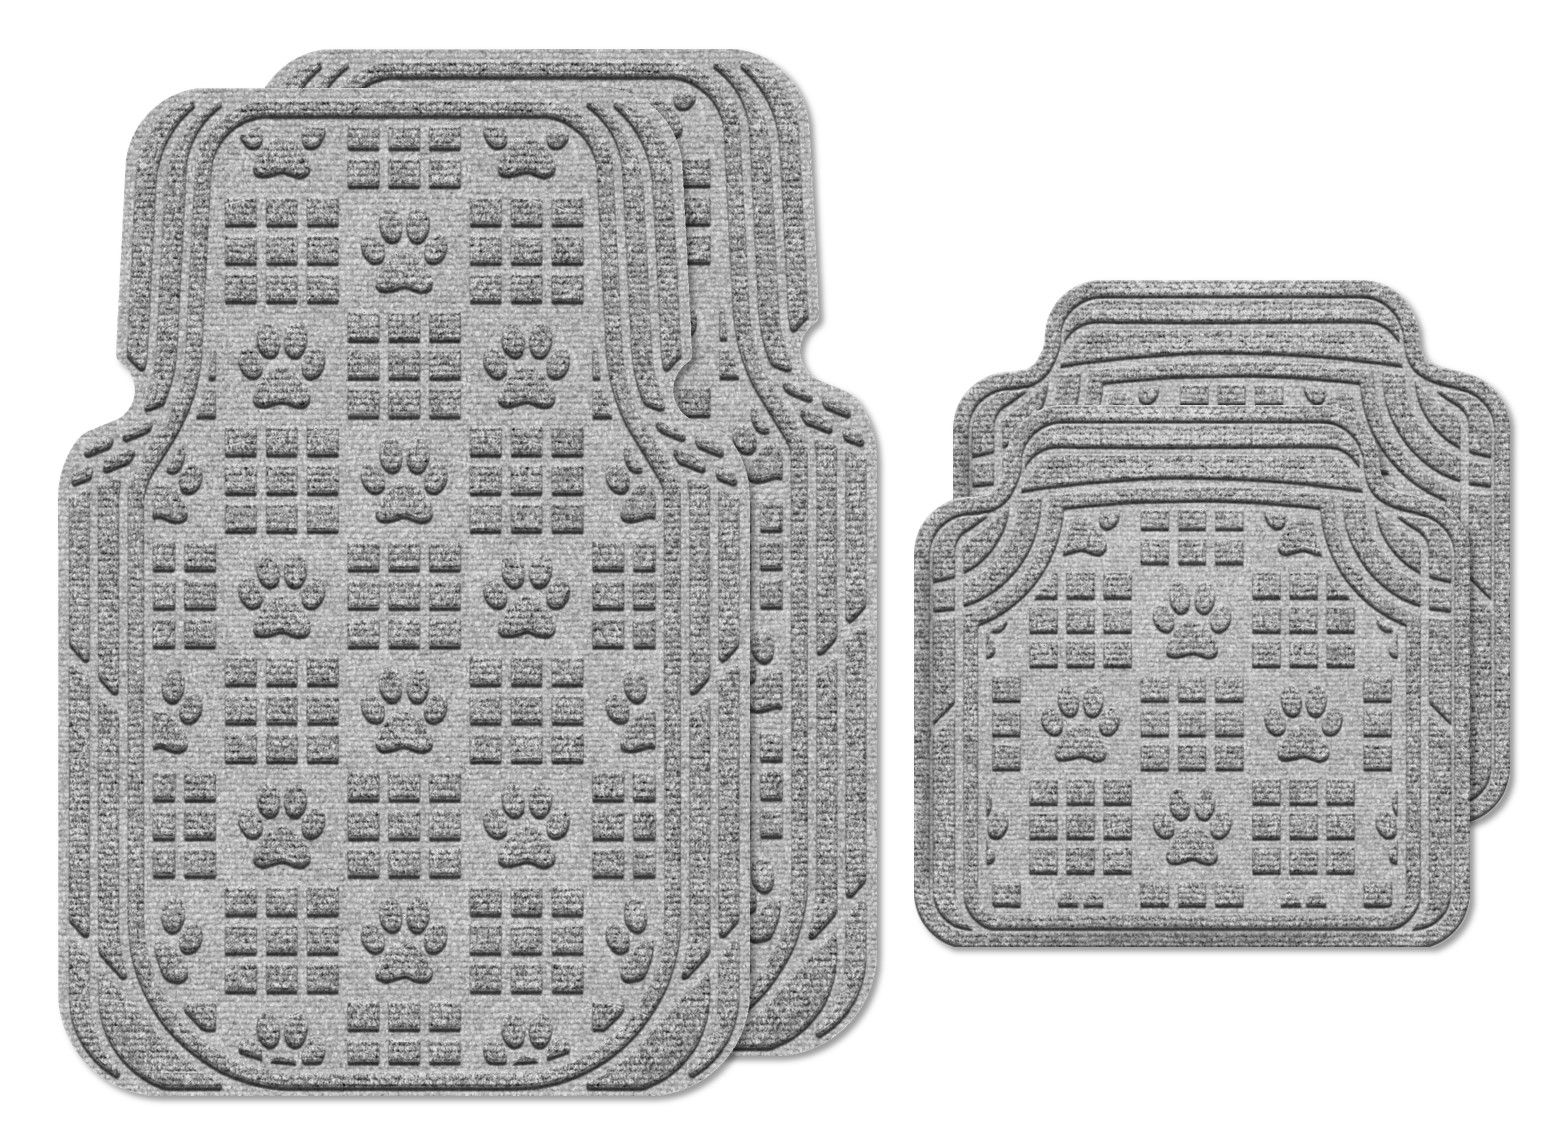 Textrel Machine Washable Car Mat Textrel S Waterhog Product Is Manufactured With The Most Absorbent Materials Pr Textrel Machine Washable Car Mats Car M